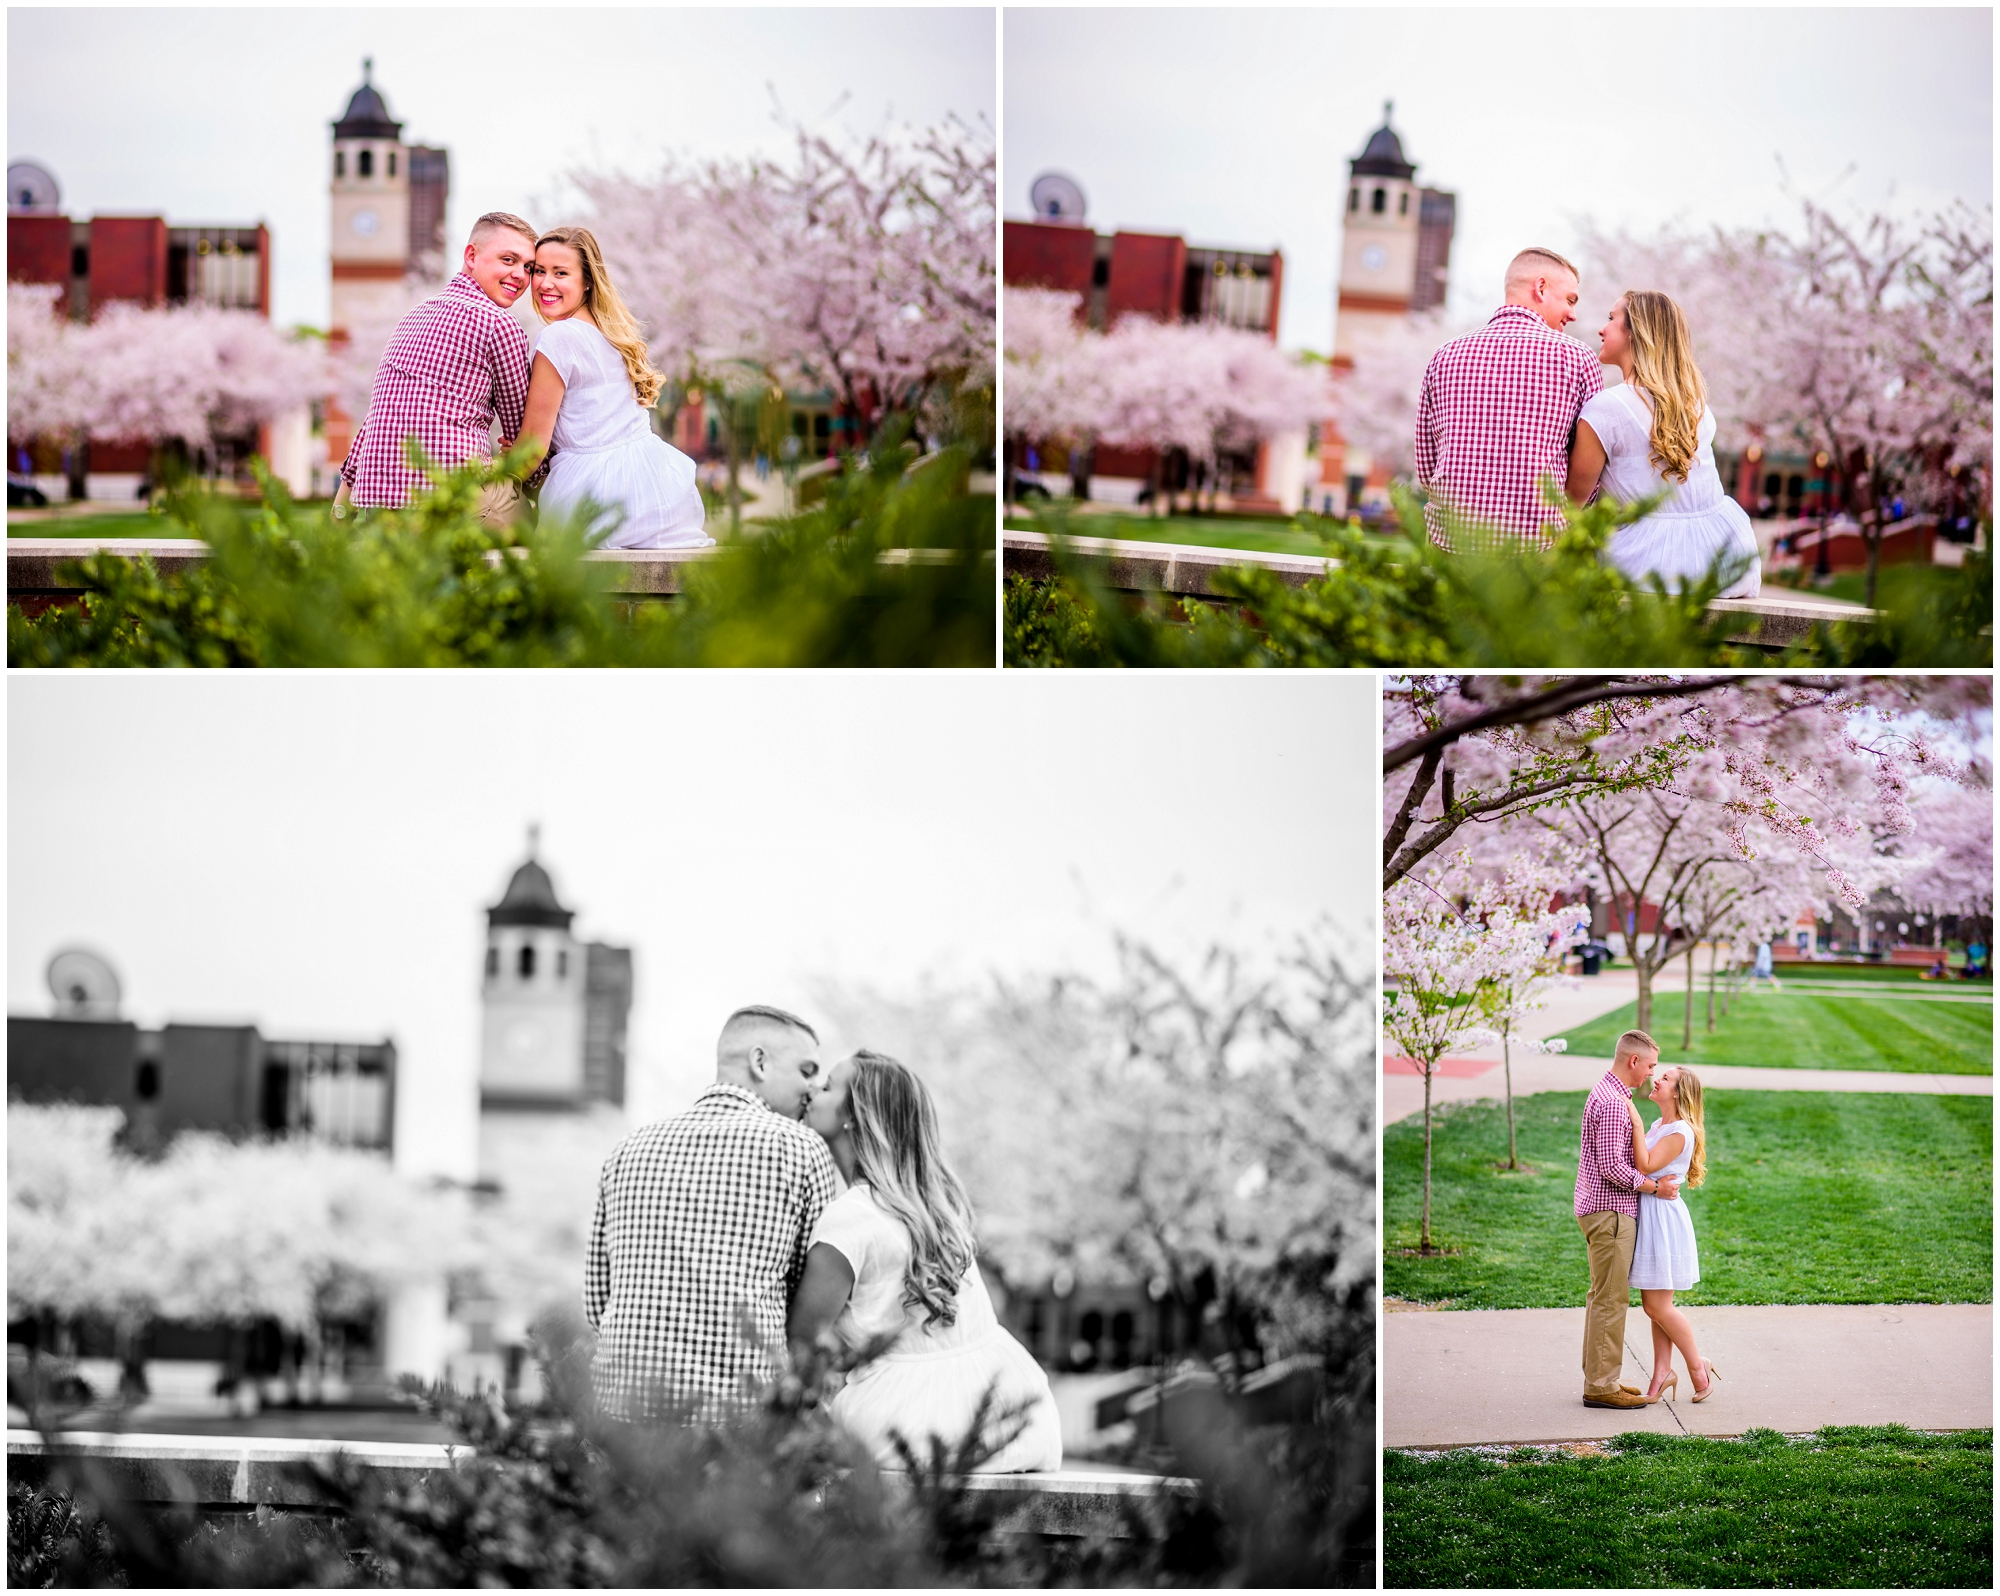 megan_danny_wku_engagement-7453-Edit.jpg